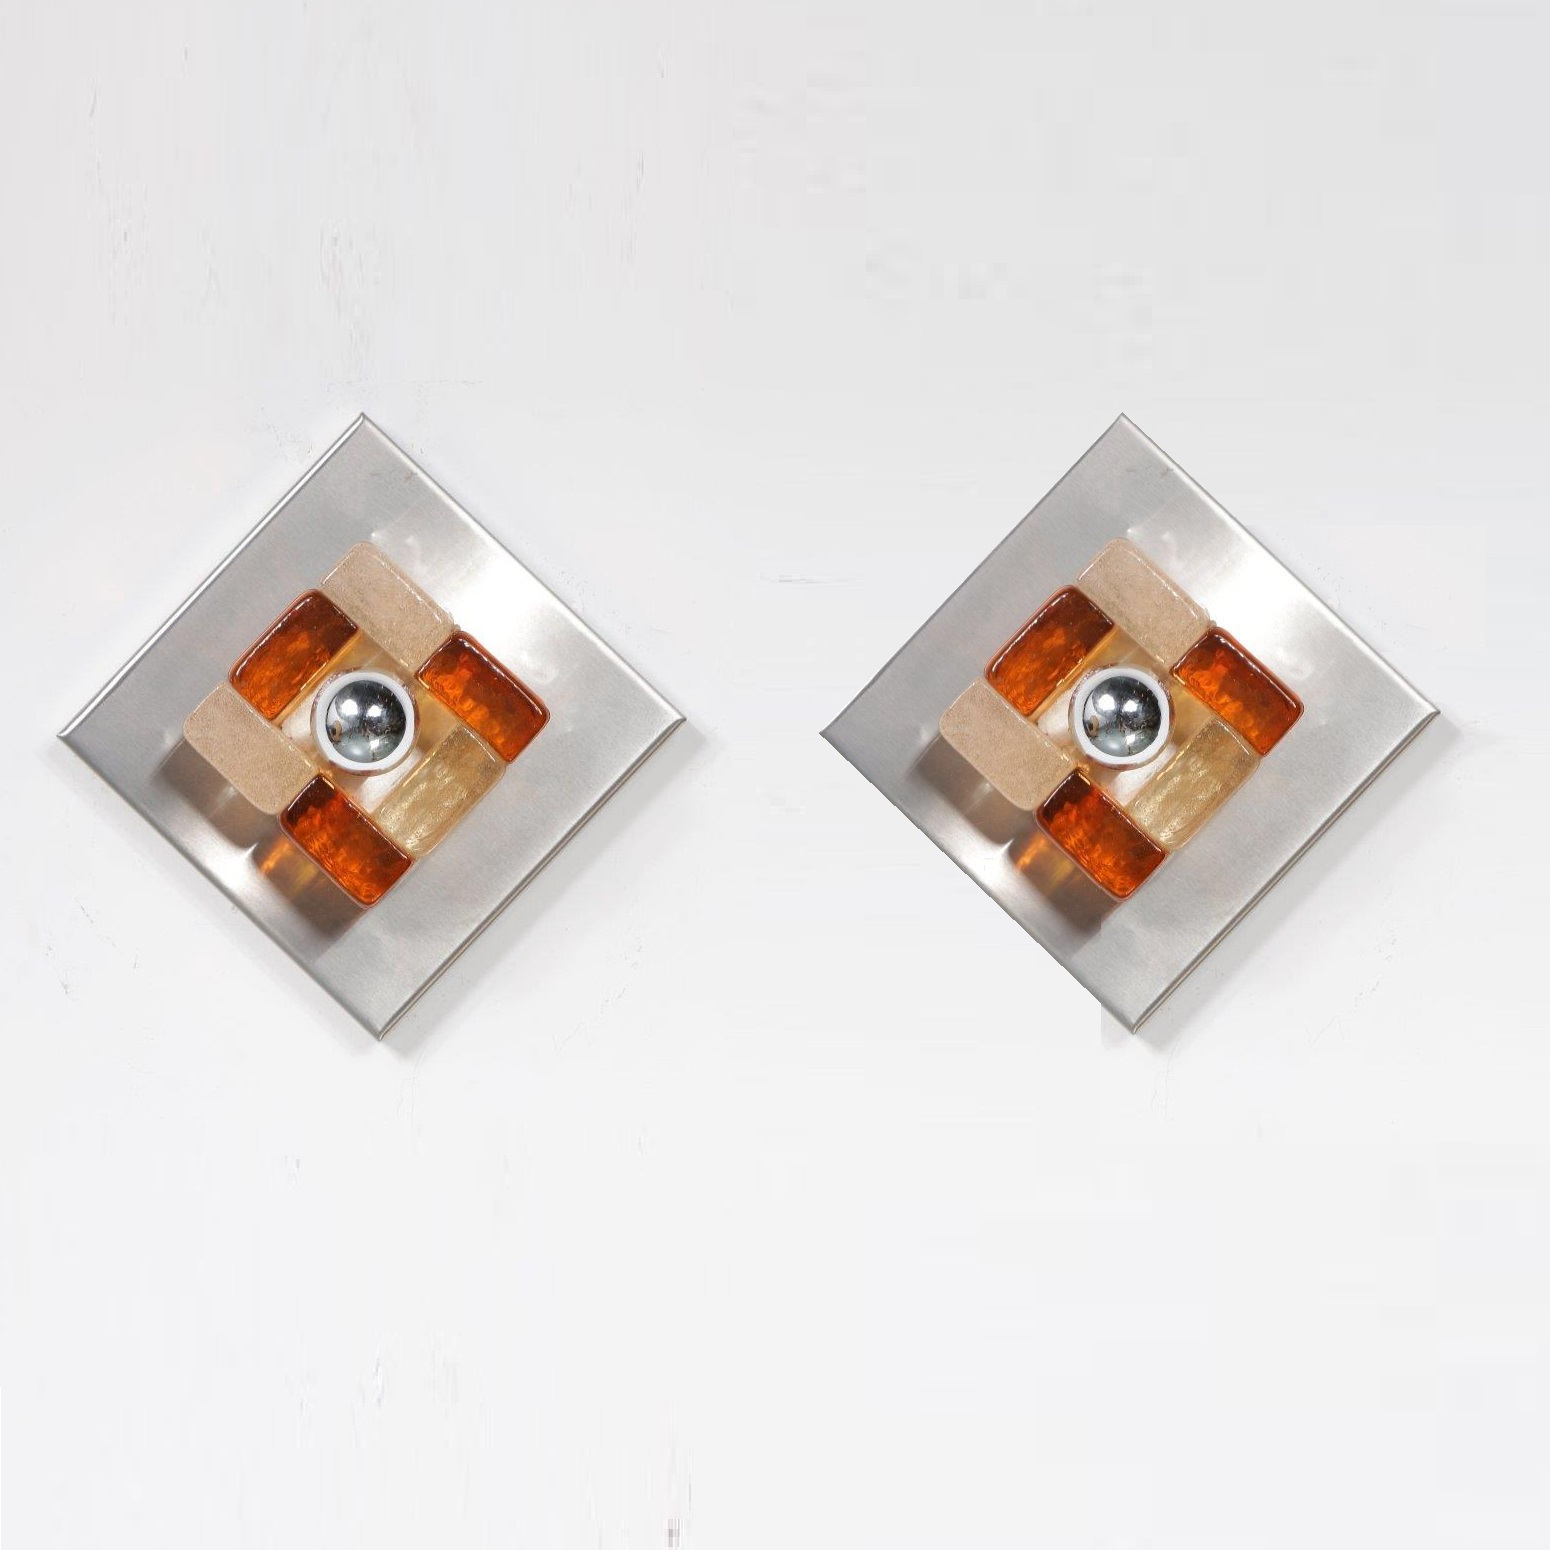 1970s Pair of Murano Wall Sconces by Angelo Brotto, manufactured in Italy